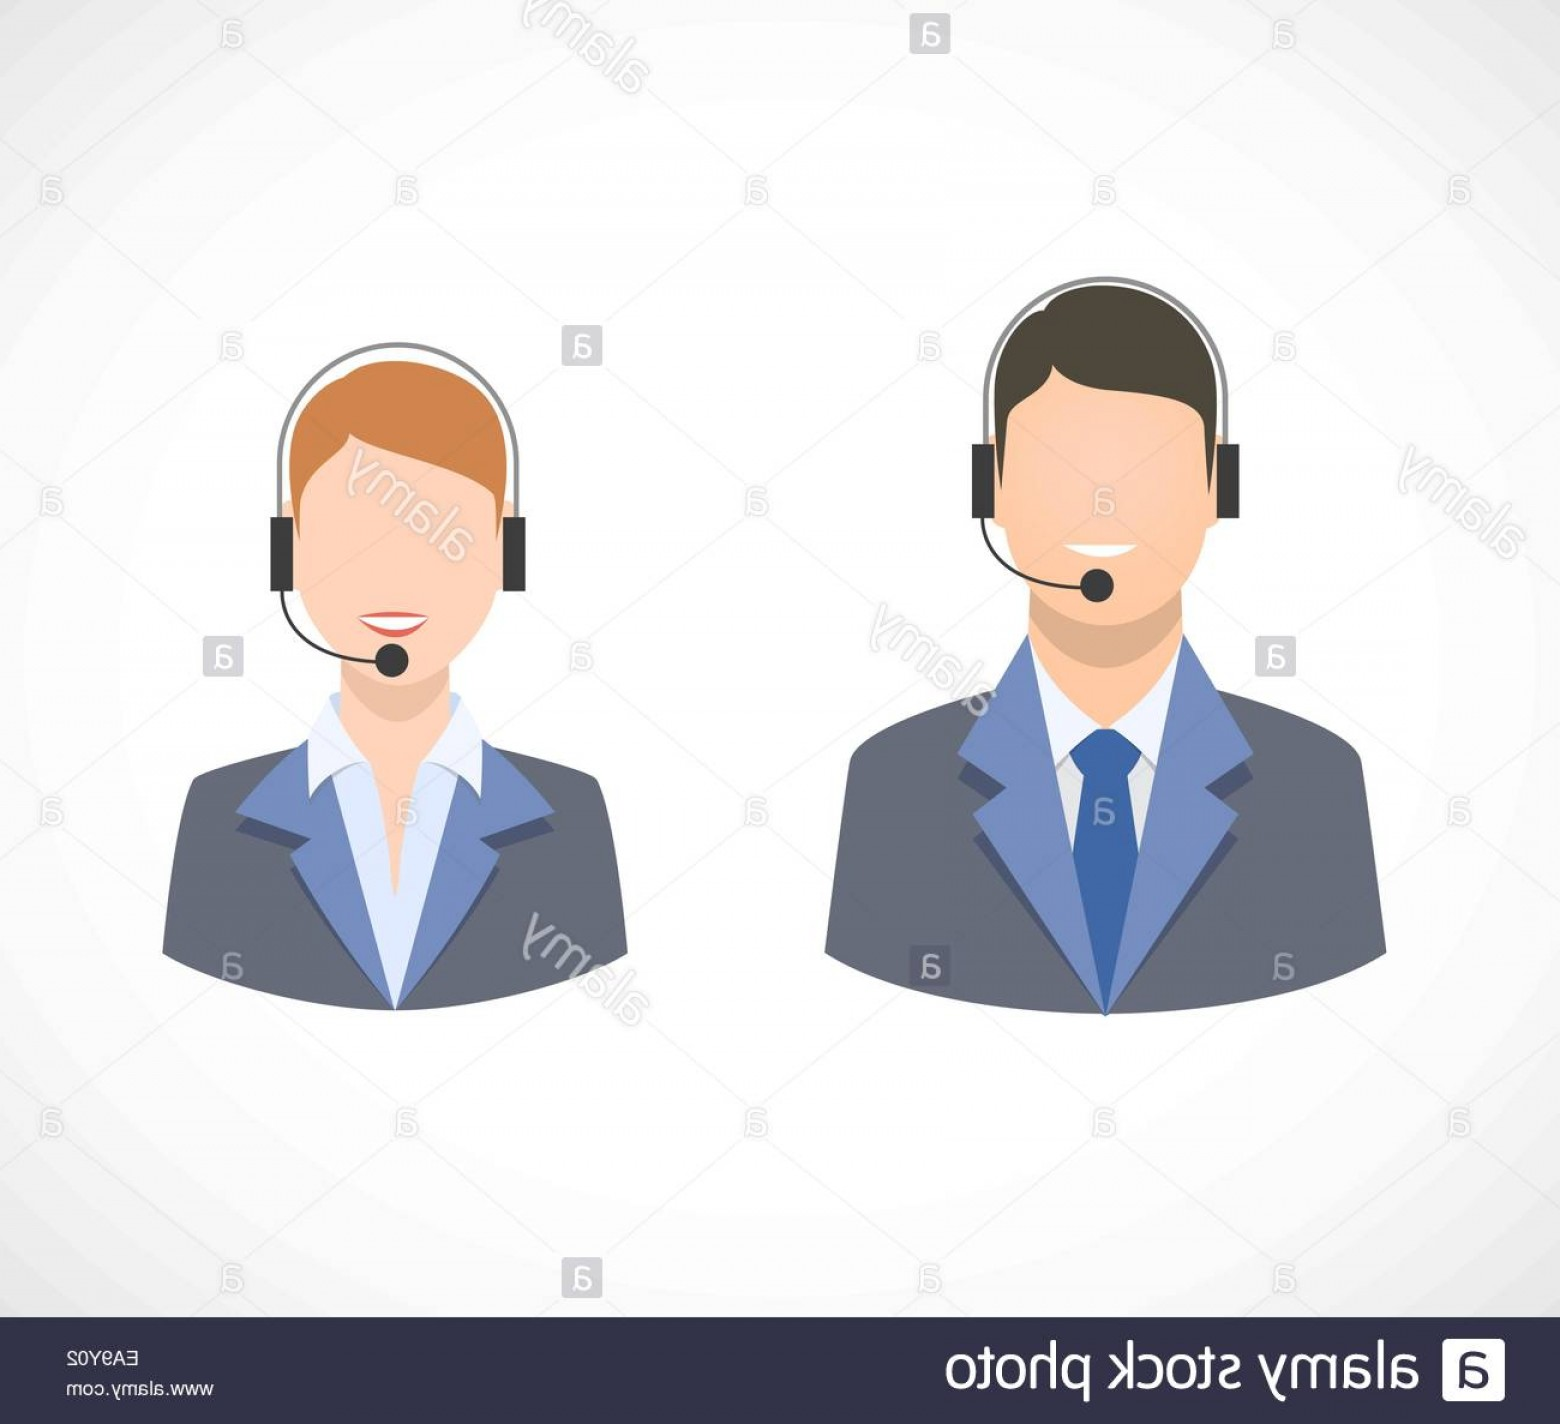 Support Staff Vector: Stock Photo Call Center Support Personnel Staff Icons Isolated Vector Illustration